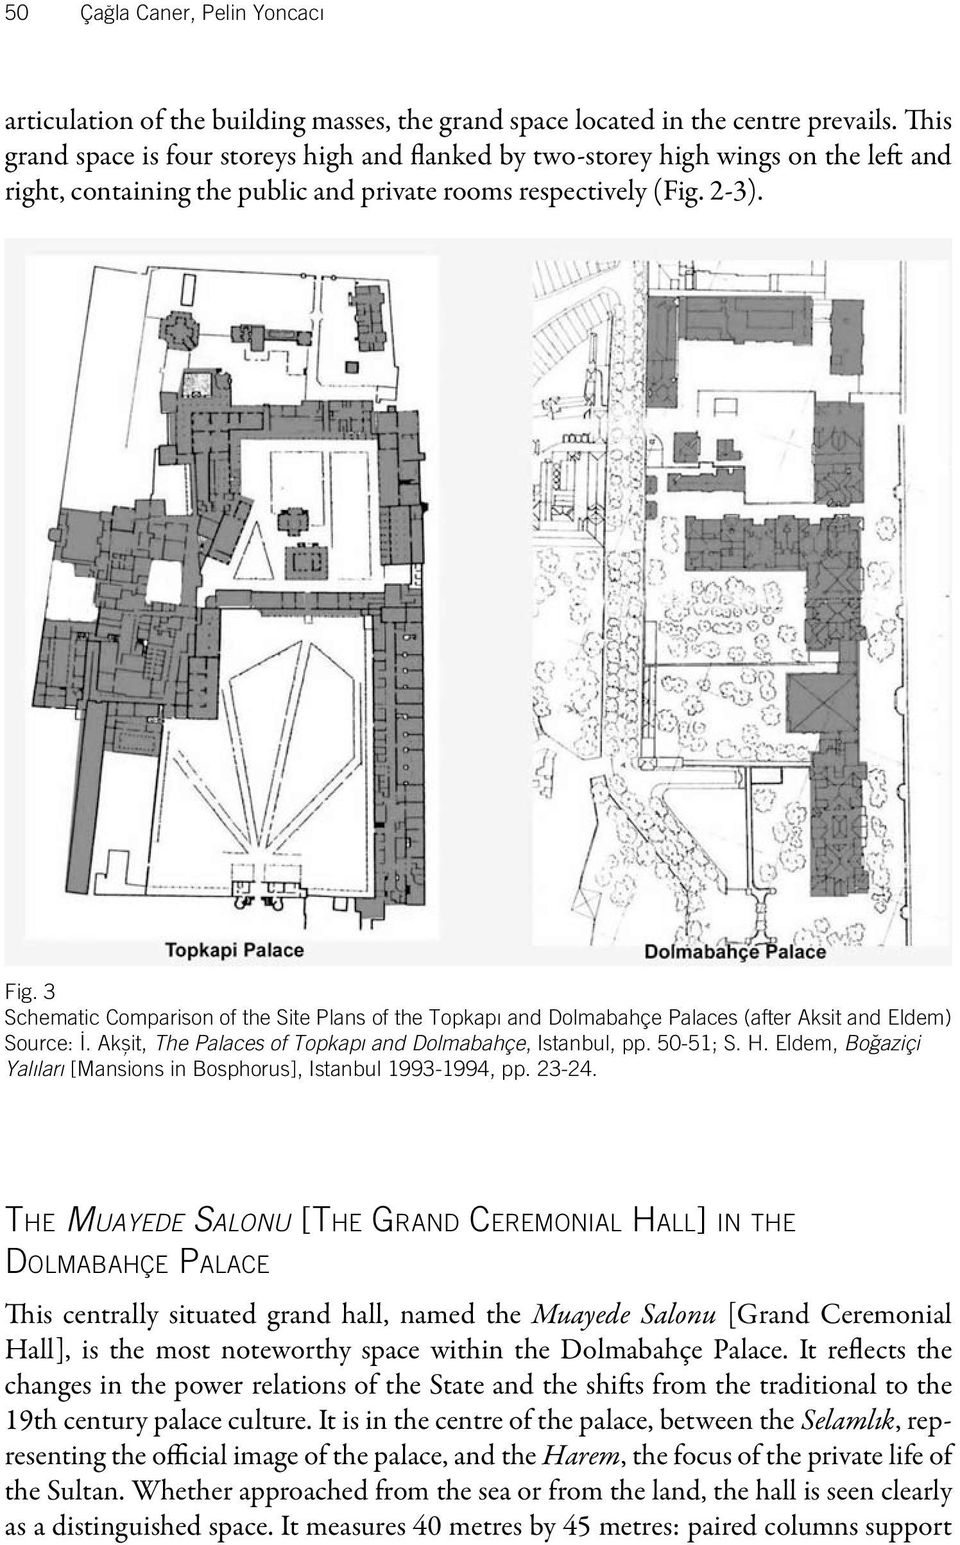 3 Schematic Comparison of the Site Plans of the Topkapı and Dolmabahçe Palaces (after Aksit and Eldem). Source: I. Aksit,, The Palaces of Topkapı and Dolmabahçe, Istanbul, pp. 50-51; S. H.